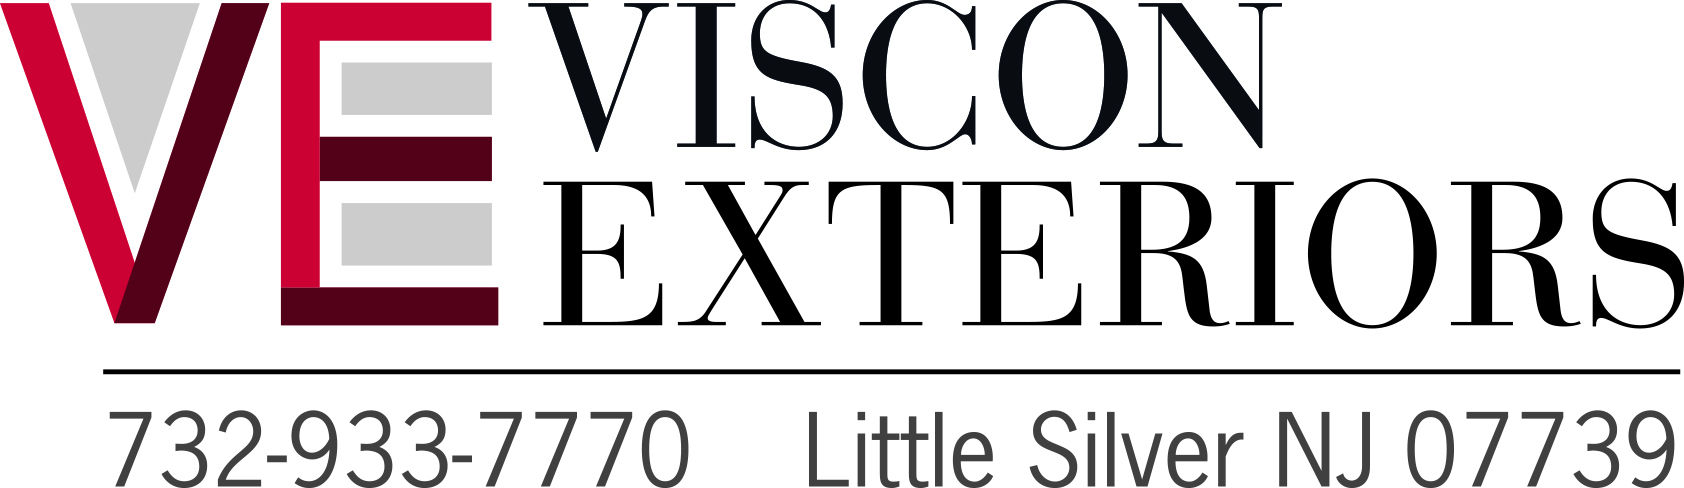 Details Make The Difference viscon exteriors – viscon exteriors… the smallest details